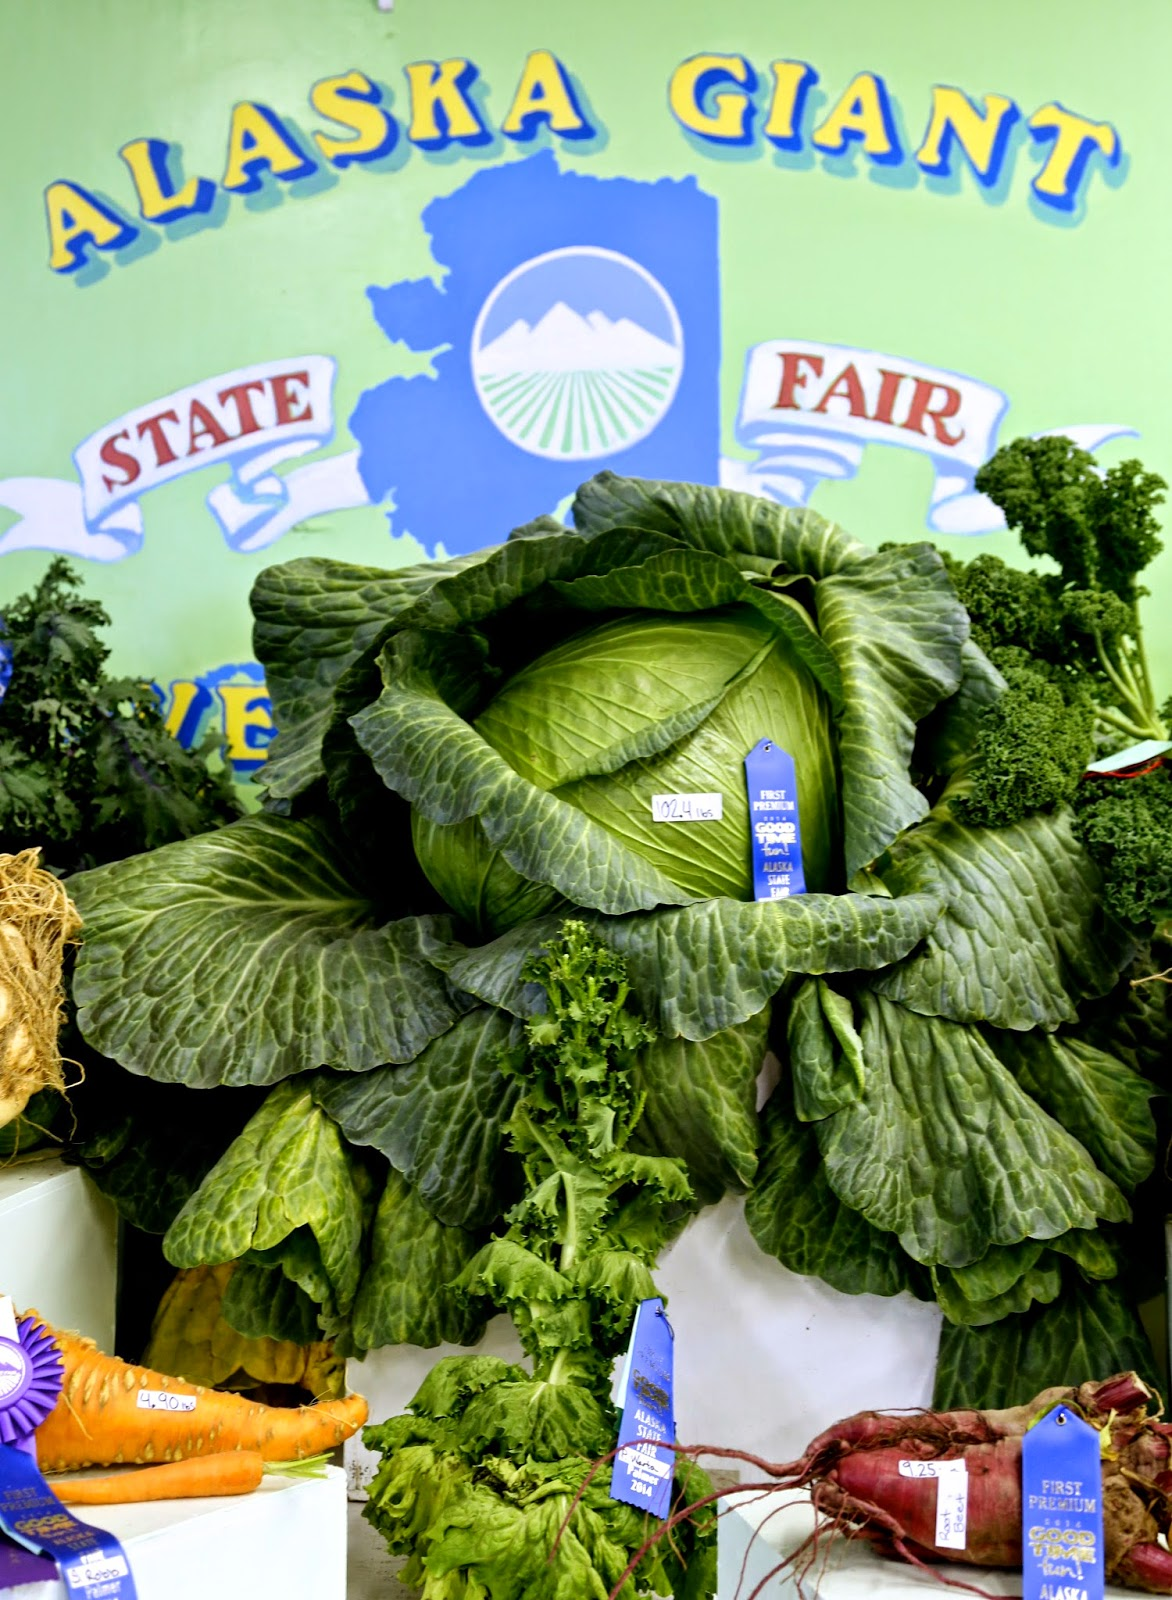 Giant Alaskan vegetables such as a 100 pound cabbage